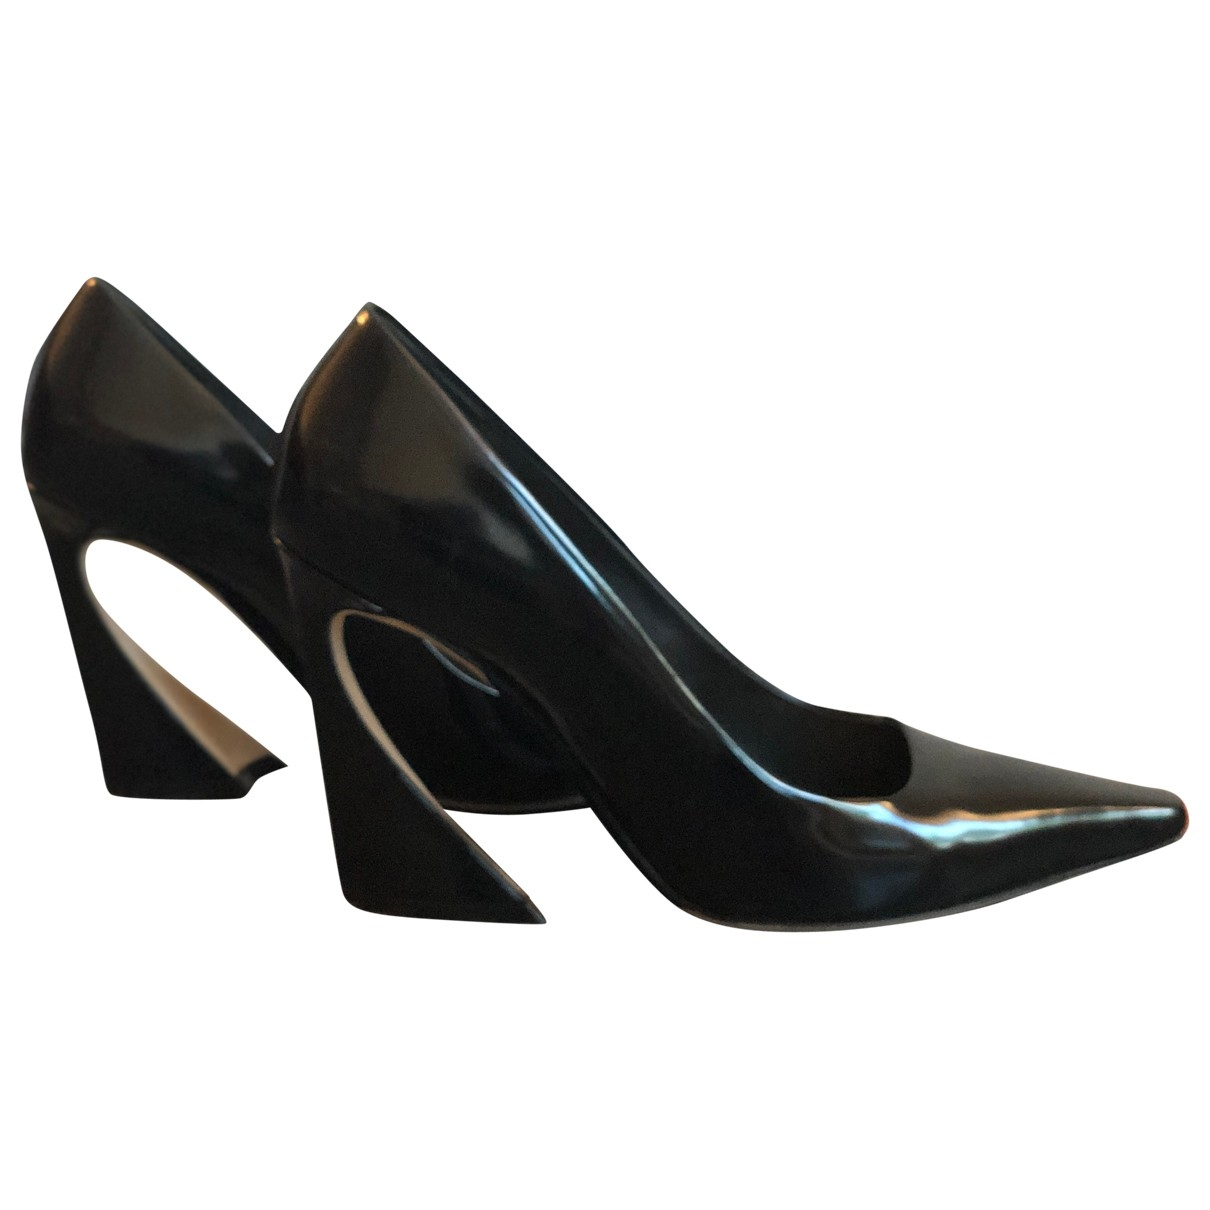 Dior \N Black Patent leather Heels for Women 40 EU